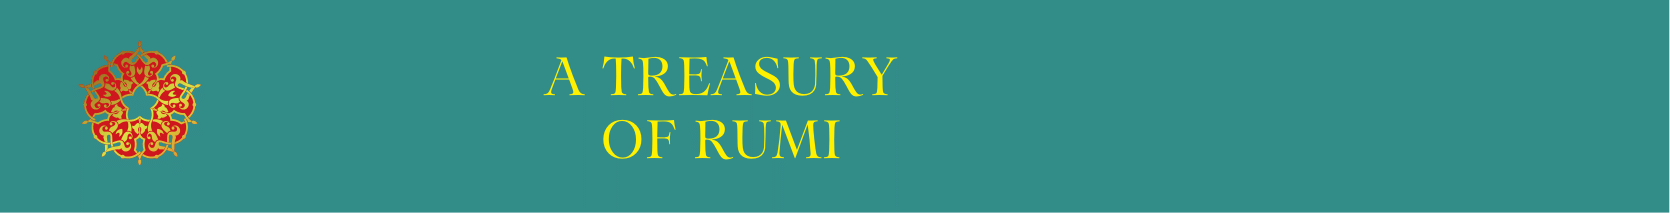 Treasury of Rumi